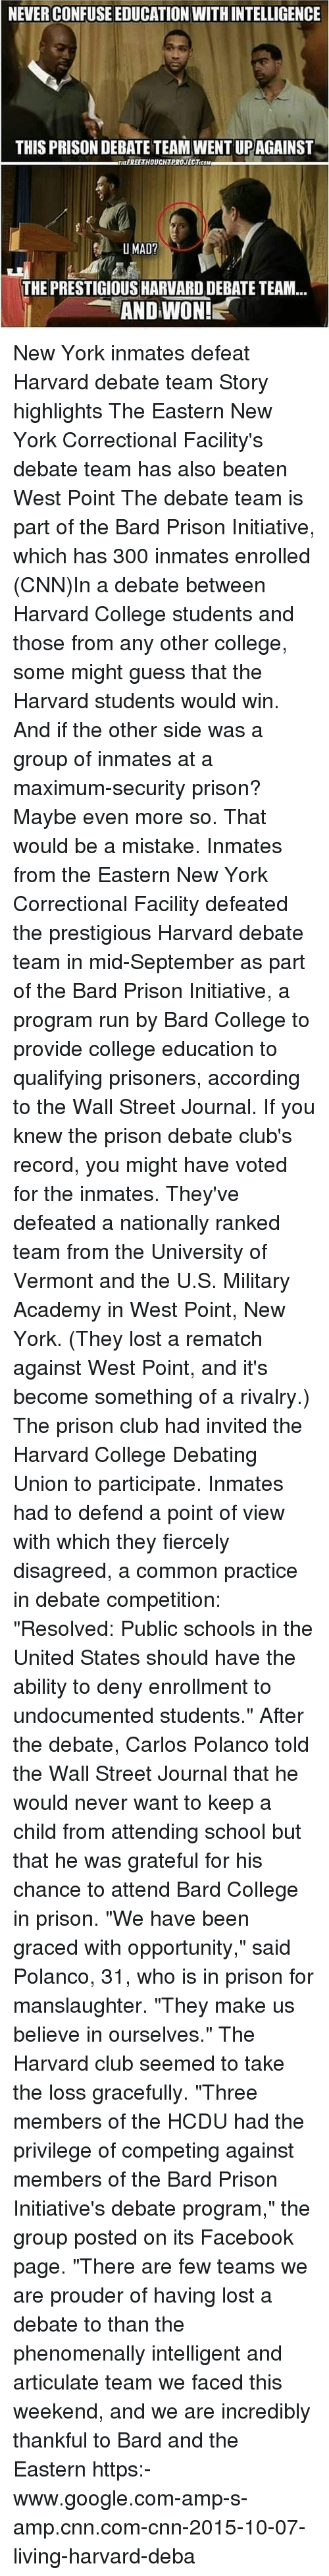 "Club, cnn.com, and College: NEVER CONFUSE EDUCATION WITH INTELLIGENCE  THIS PRISON DEBATE TEAM WENT UPAGAINST  THEEREETHOUCHTPROJECTCOM  THE PRESTIGIOUS HARVARD DEBATE TEAM...  AND WON! New York inmates defeat Harvard debate team Story highlights The Eastern New York Correctional Facility's debate team has also beaten West Point The debate team is part of the Bard Prison Initiative, which has 300 inmates enrolled (CNN)In a debate between Harvard College students and those from any other college, some might guess that the Harvard students would win. And if the other side was a group of inmates at a maximum-security prison? Maybe even more so. That would be a mistake. Inmates from the Eastern New York Correctional Facility defeated the prestigious Harvard debate team in mid-September as part of the Bard Prison Initiative, a program run by Bard College to provide college education to qualifying prisoners, according to the Wall Street Journal. If you knew the prison debate club's record, you might have voted for the inmates. They've defeated a nationally ranked team from the University of Vermont and the U.S. Military Academy in West Point, New York. (They lost a rematch against West Point, and it's become something of a rivalry.) The prison club had invited the Harvard College Debating Union to participate. Inmates had to defend a point of view with which they fiercely disagreed, a common practice in debate competition: ""Resolved: Public schools in the United States should have the ability to deny enrollment to undocumented students."" After the debate, Carlos Polanco told the Wall Street Journal that he would never want to keep a child from attending school but that he was grateful for his chance to attend Bard College in prison. ""We have been graced with opportunity,"" said Polanco, 31, who is in prison for manslaughter. ""They make us believe in ourselves."" The Harvard club seemed to take the loss gracefully. ""Three members of the HCDU had the privilege of competing against members of the Bard Prison Initiative's debate program,"" the group posted on its Facebook page. ""There are few teams we are prouder of having lost a debate to than the phenomenally intelligent and articulate team we faced this weekend, and we are incredibly thankful to Bard and the Eastern https:-www.google.com-amp-s-amp.cnn.com-cnn-2015-10-07-living-harvard-deba"